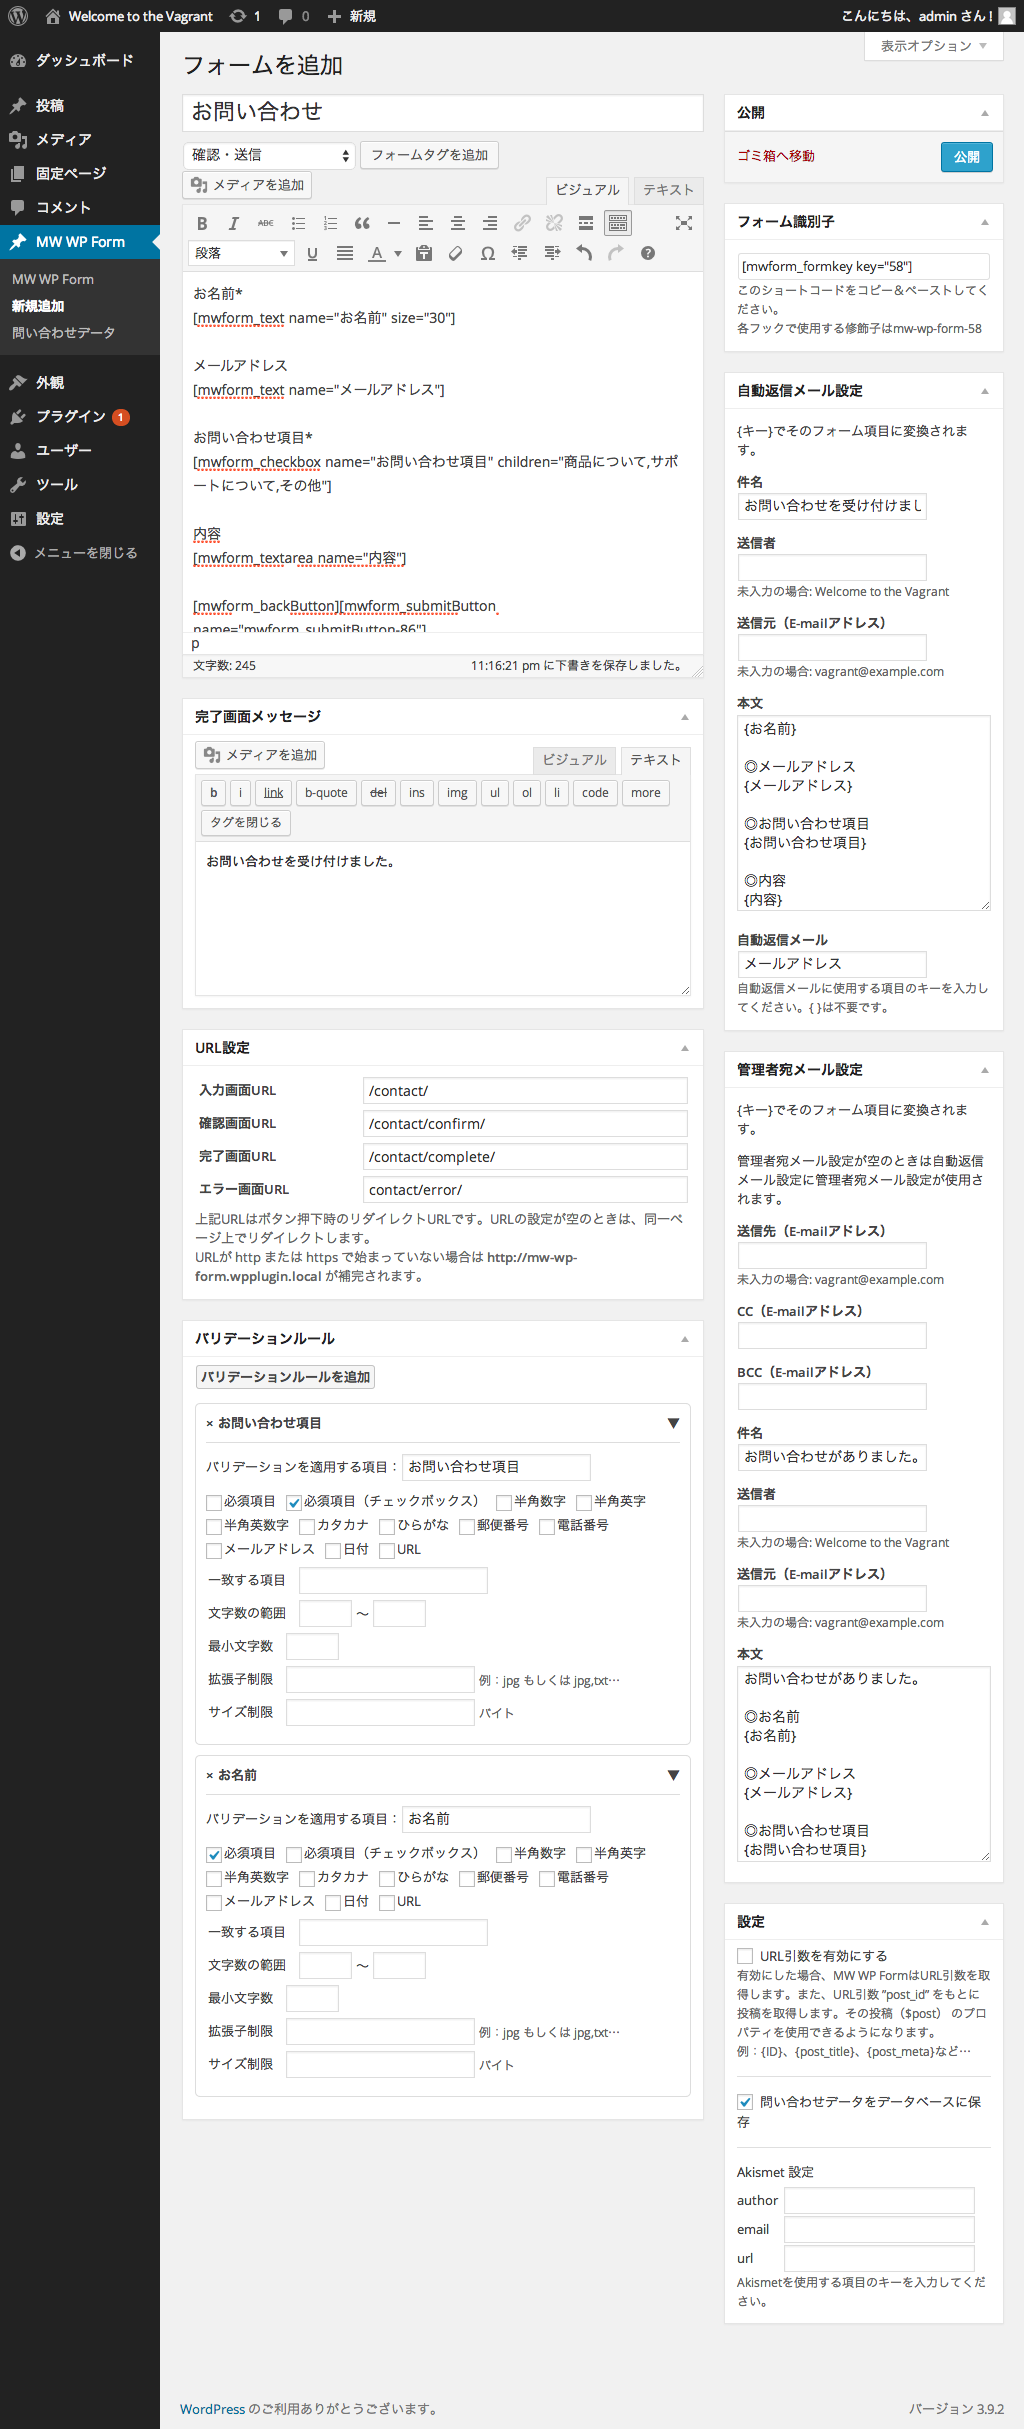 Form creation page.